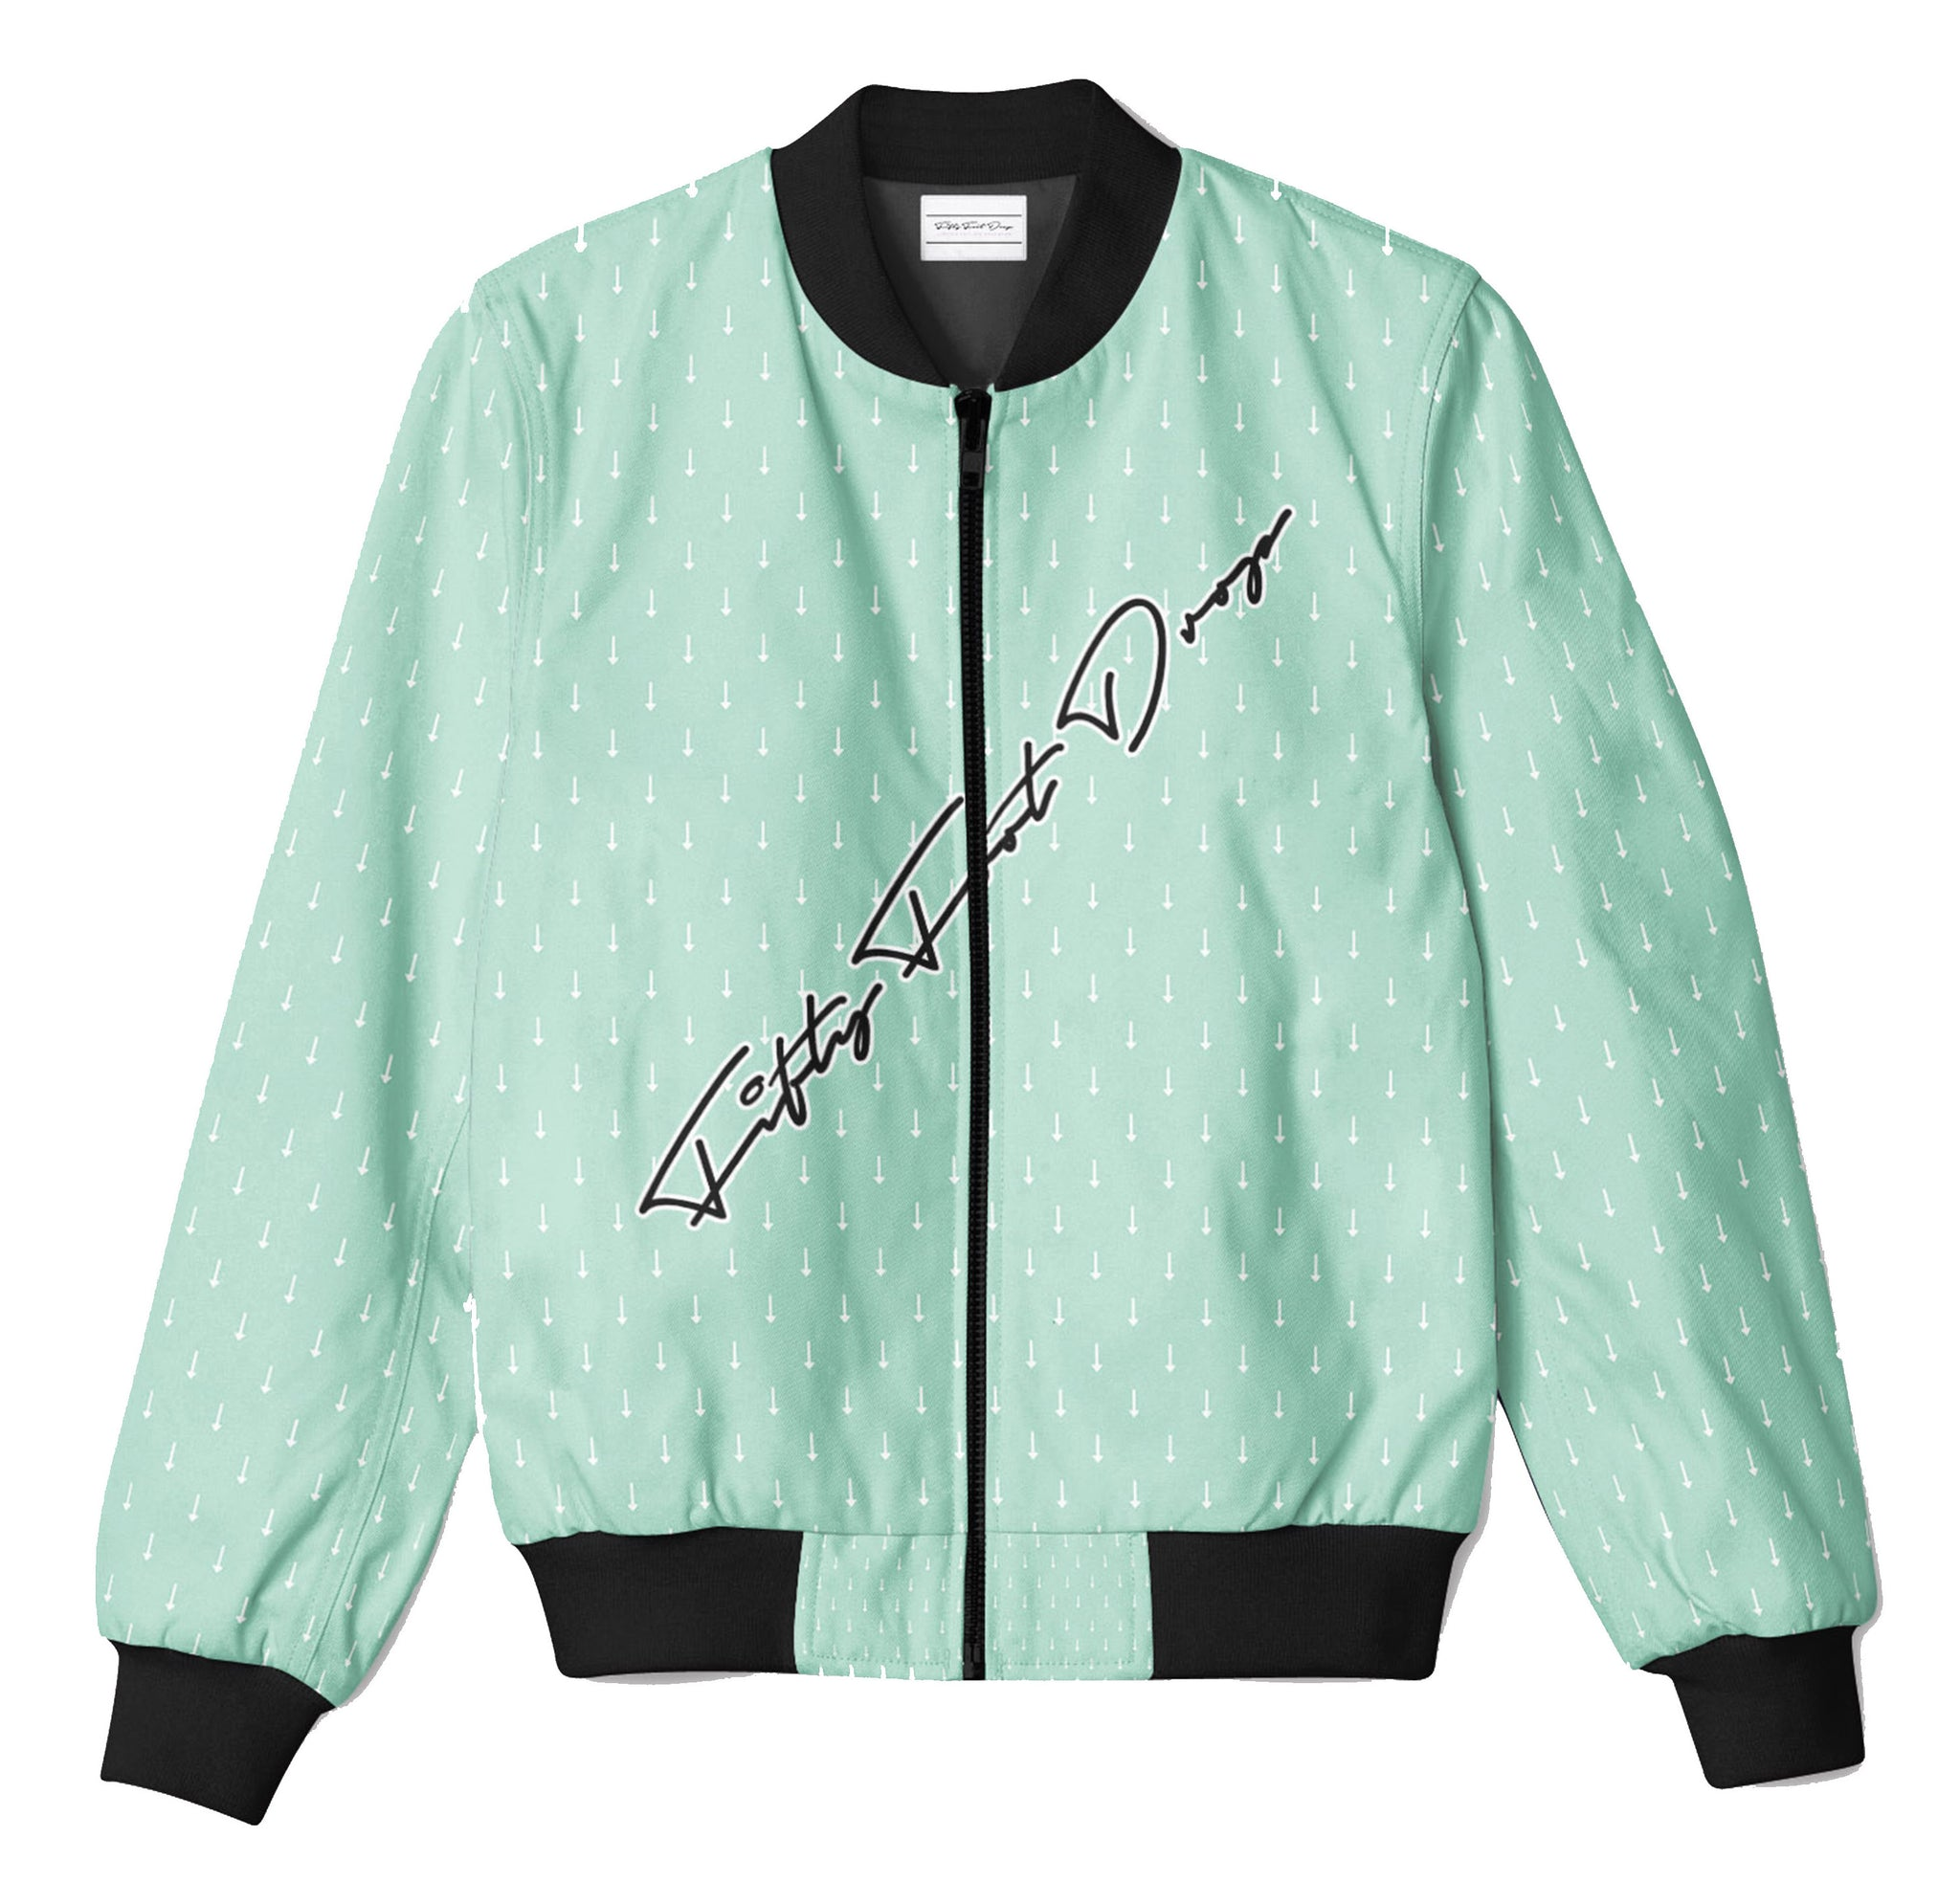 MINT ARROW - FIFTY FOOT DROP - BOMBER JACKET  Fifty Foot Drop  fresh-on-road.myshopify.com Fifty Foot Drop